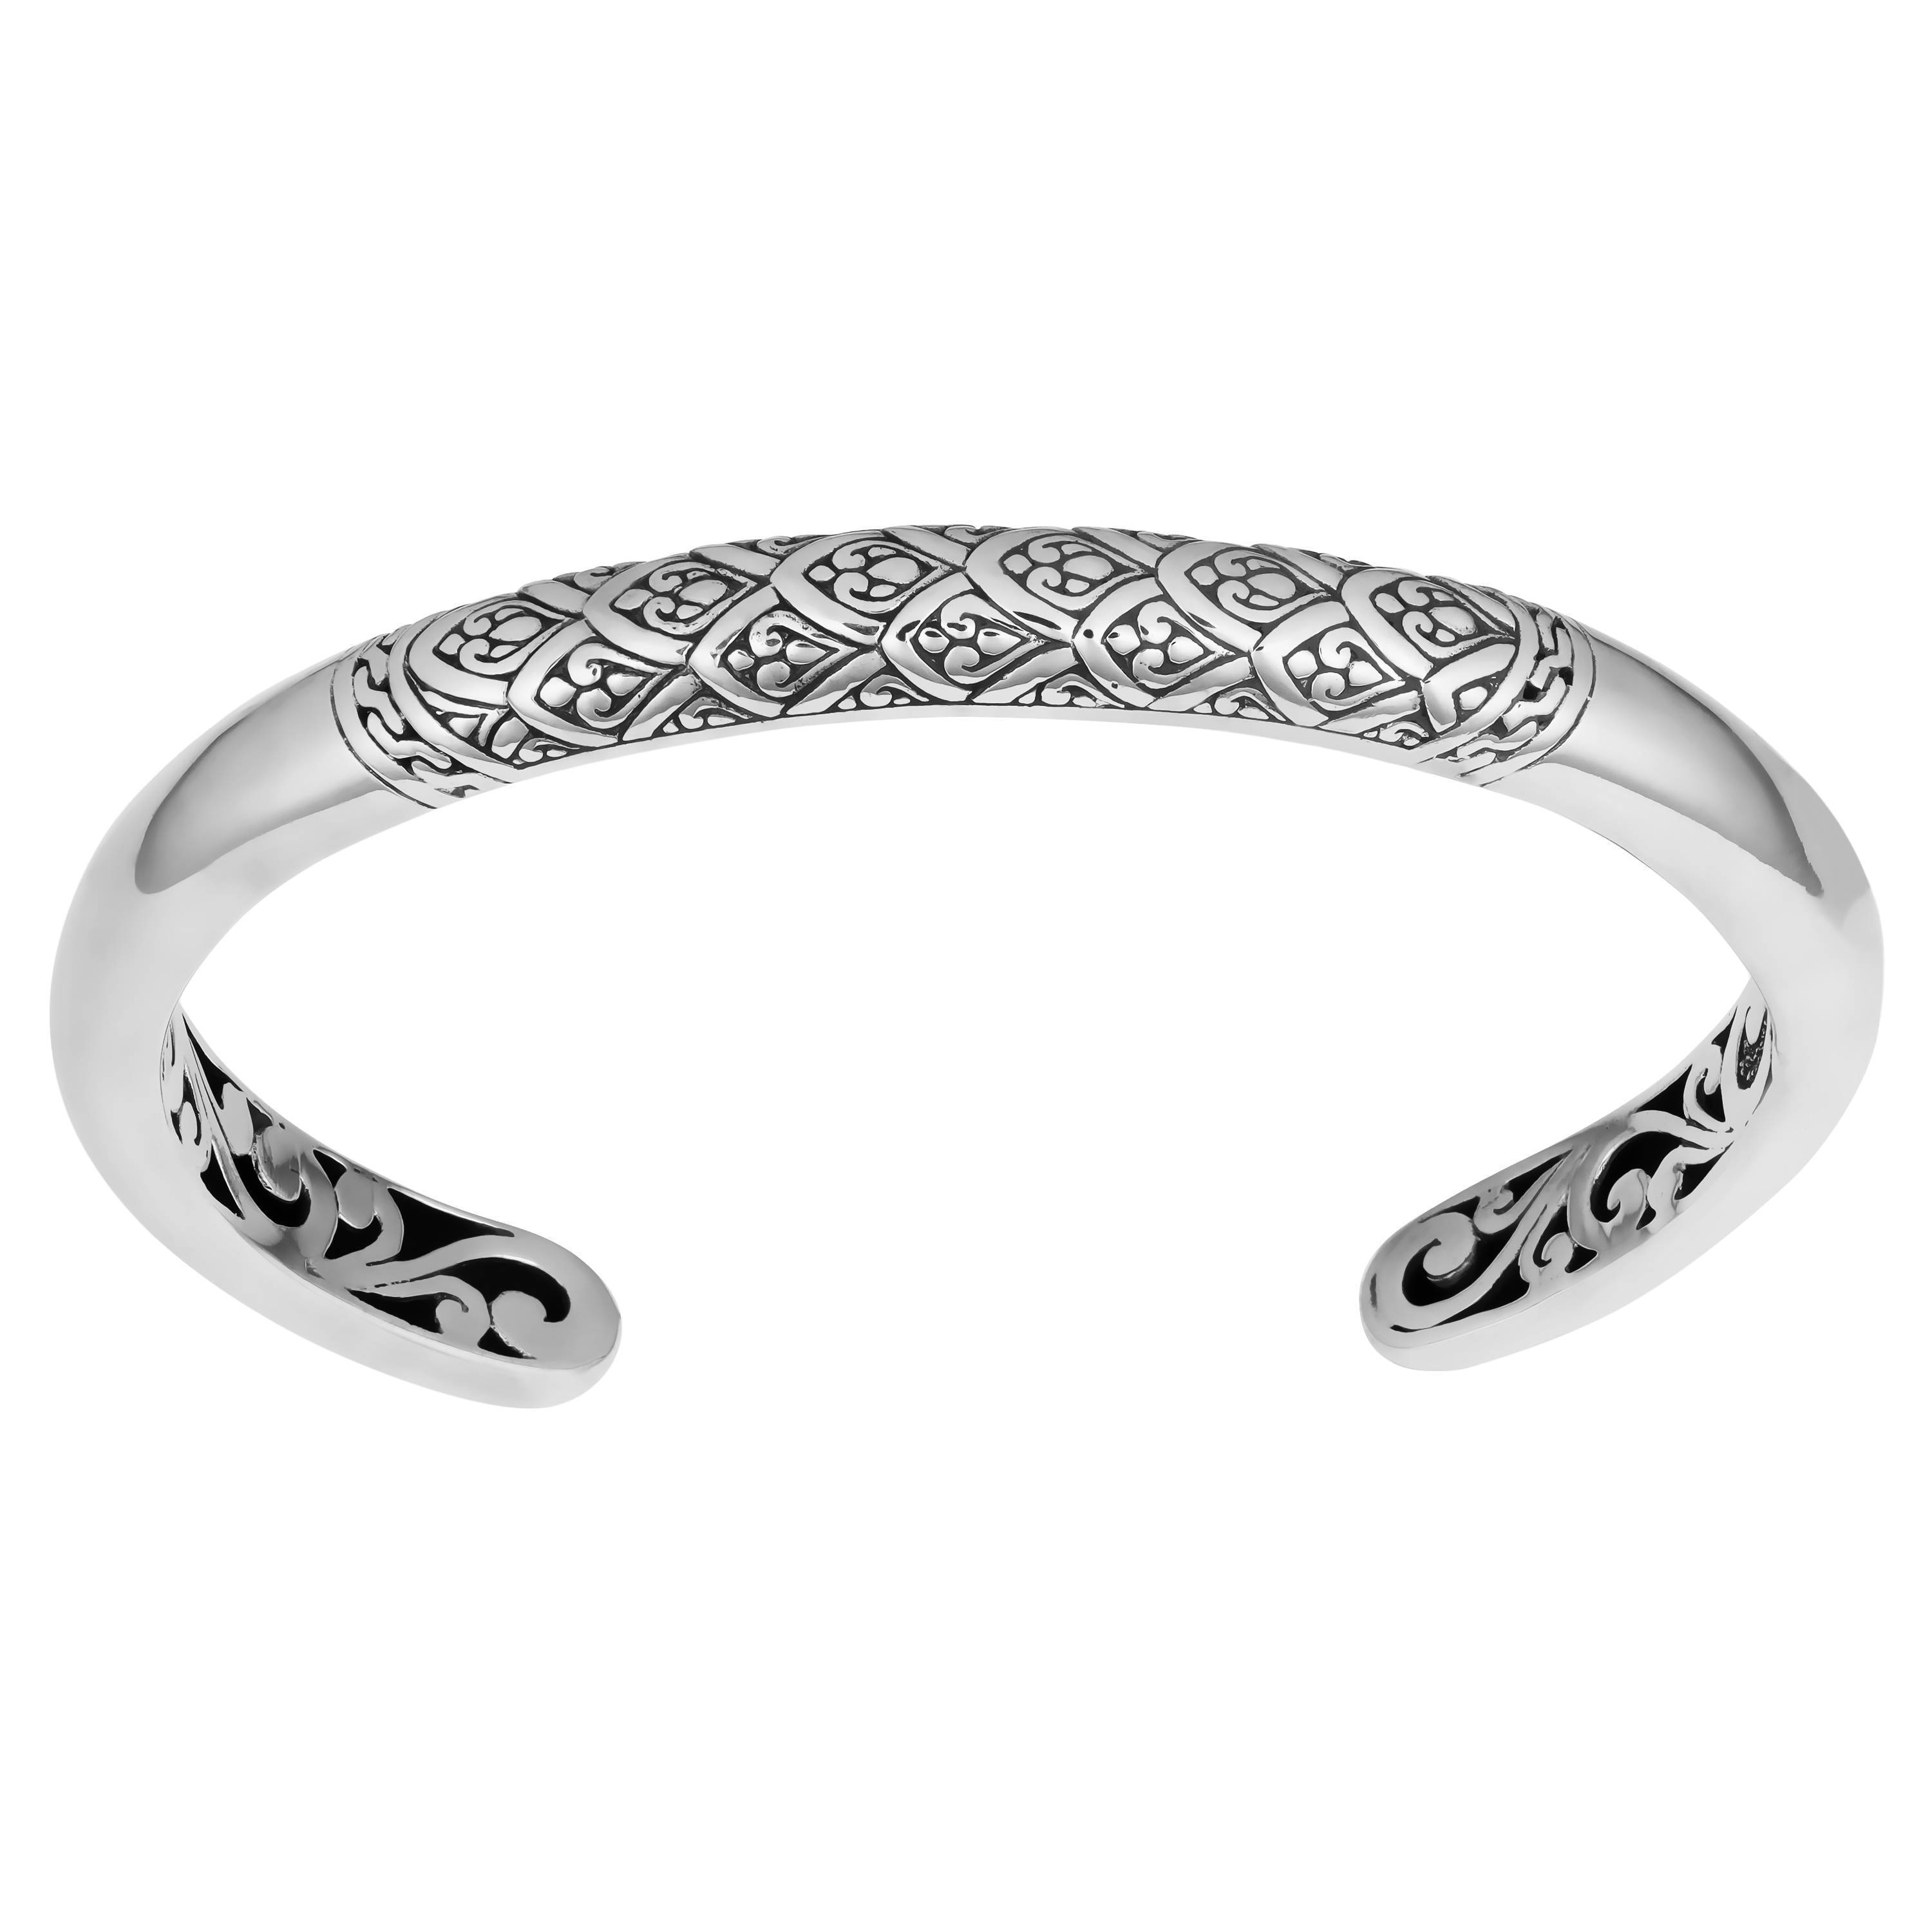 6d543ef14 Shop Handmade Sterling Silver 'Rain Forrest' Cawi Cuff Bracelet (Indonesia)  - On Sale - Free Shipping Today - Overstock - 10223744